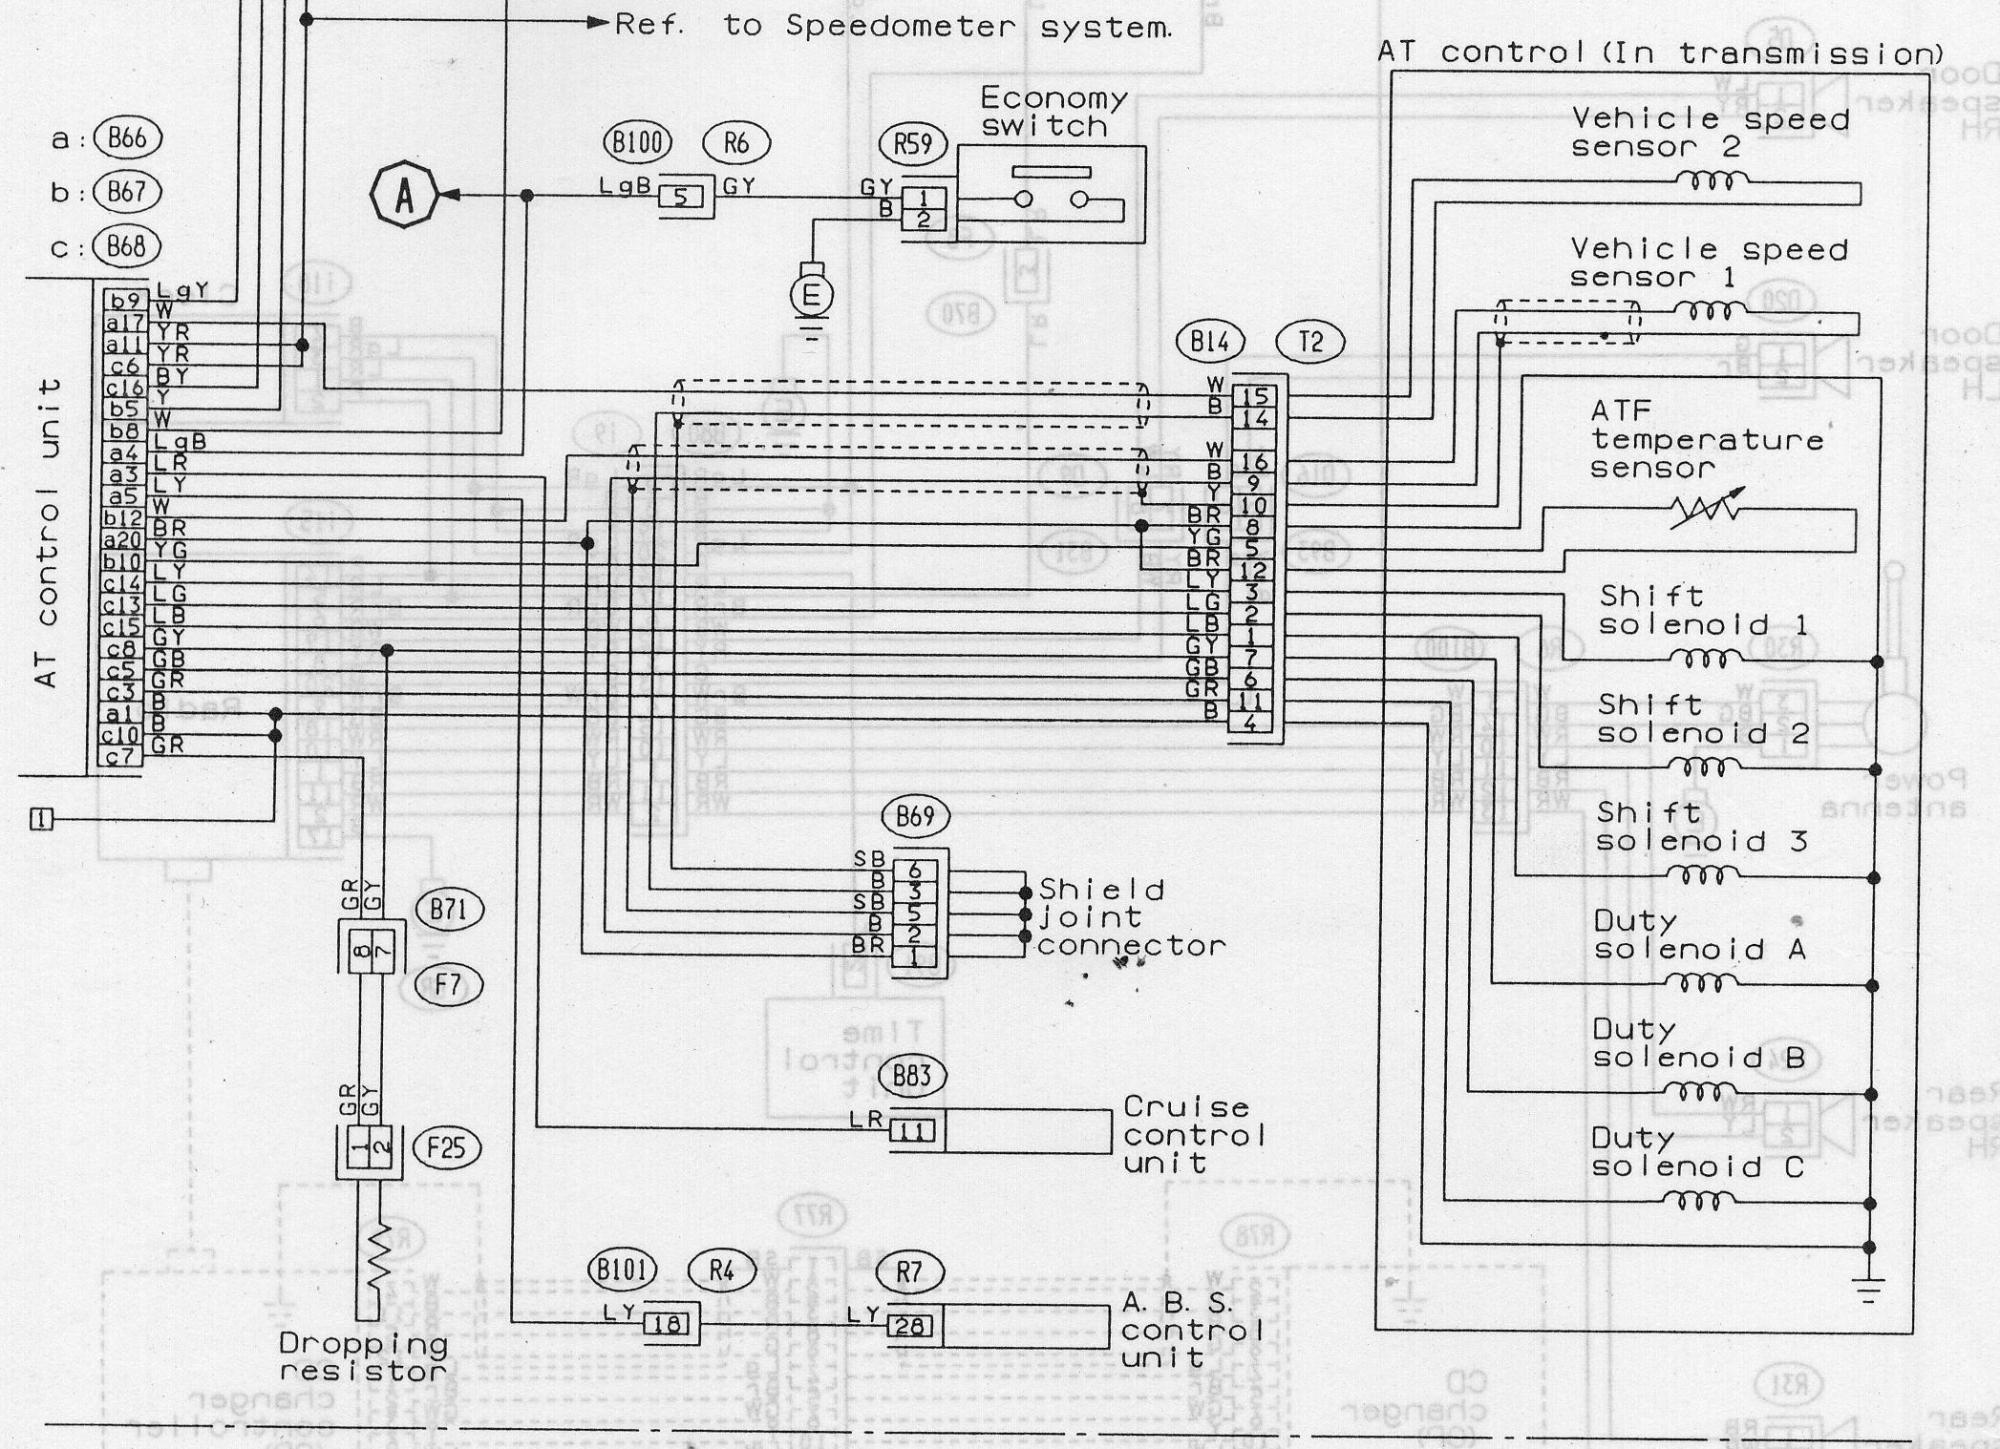 hight resolution of 1992 subaru svx wiring diagram wiring library subaru svx engine swap subaru svx wiring diagram